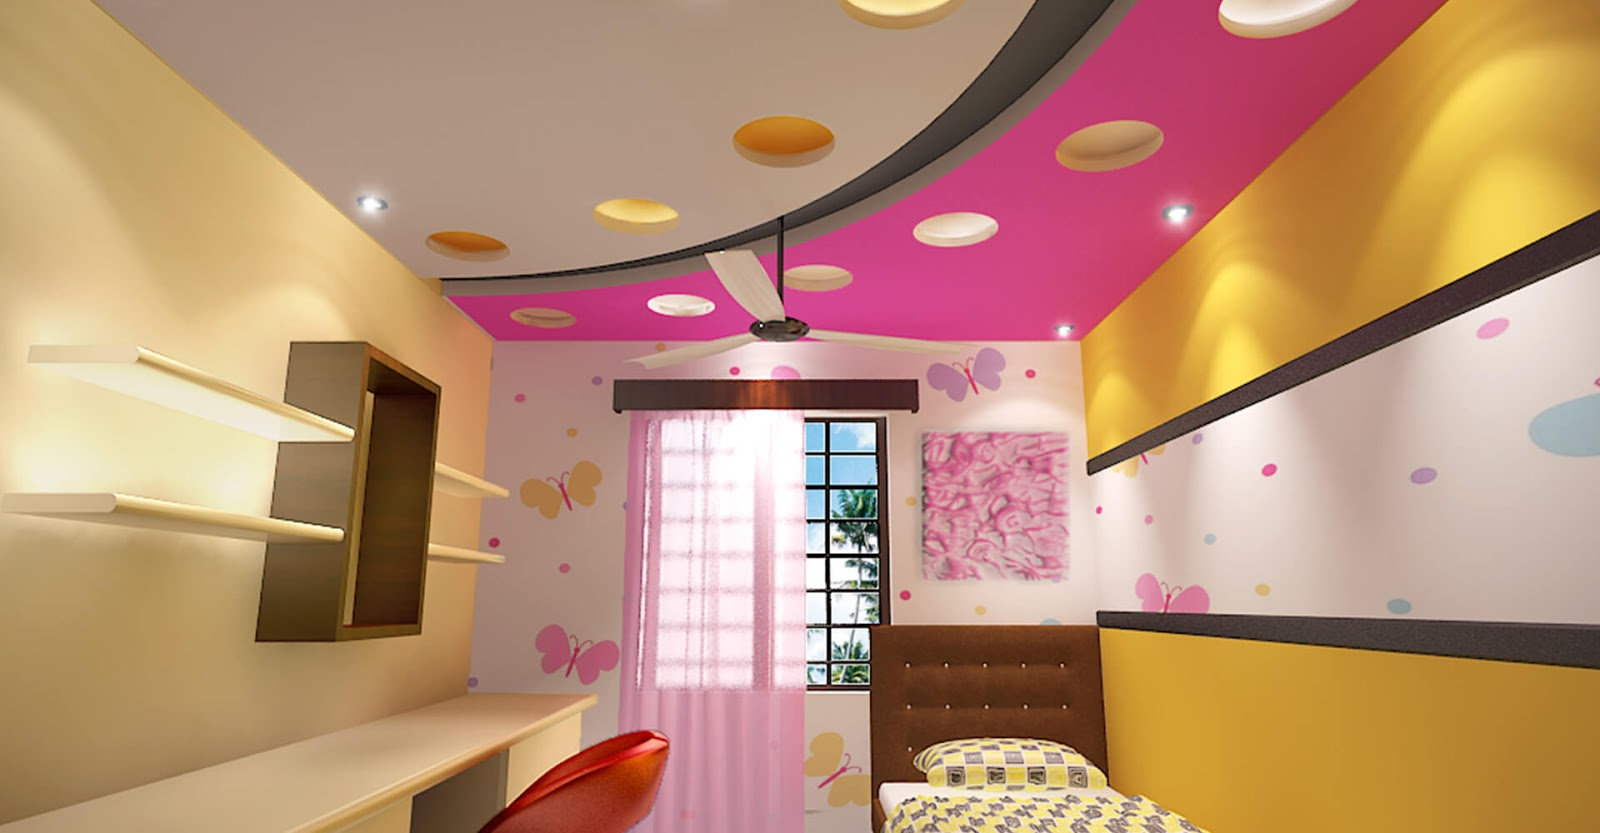 ceiling for kids - photo #19